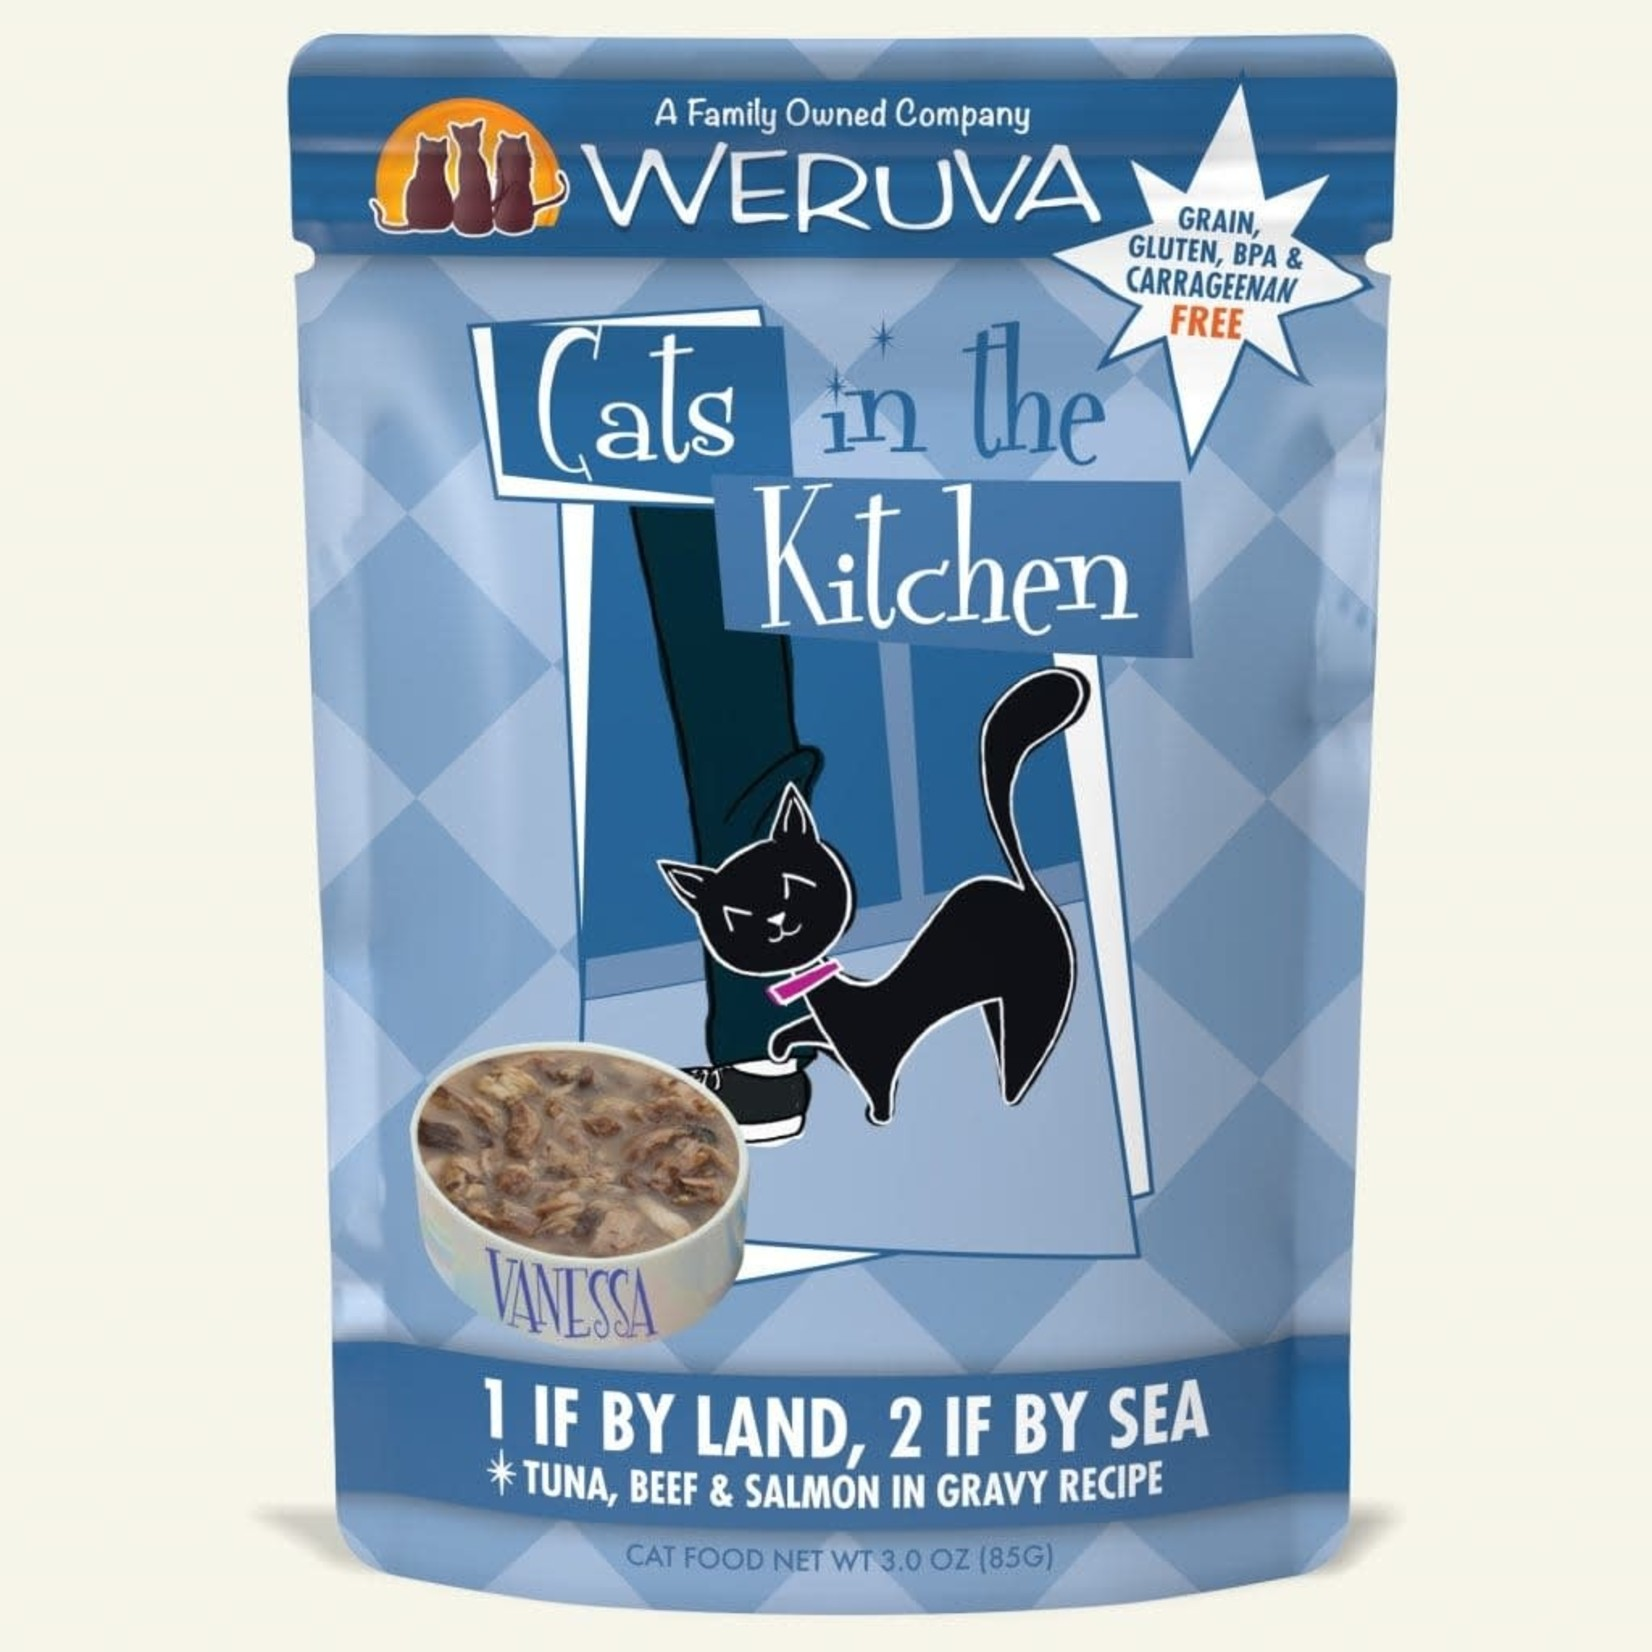 Weruva Inc. Cats In The Kitchen 1 By Land 2 By Sea 3 OZ Pouch